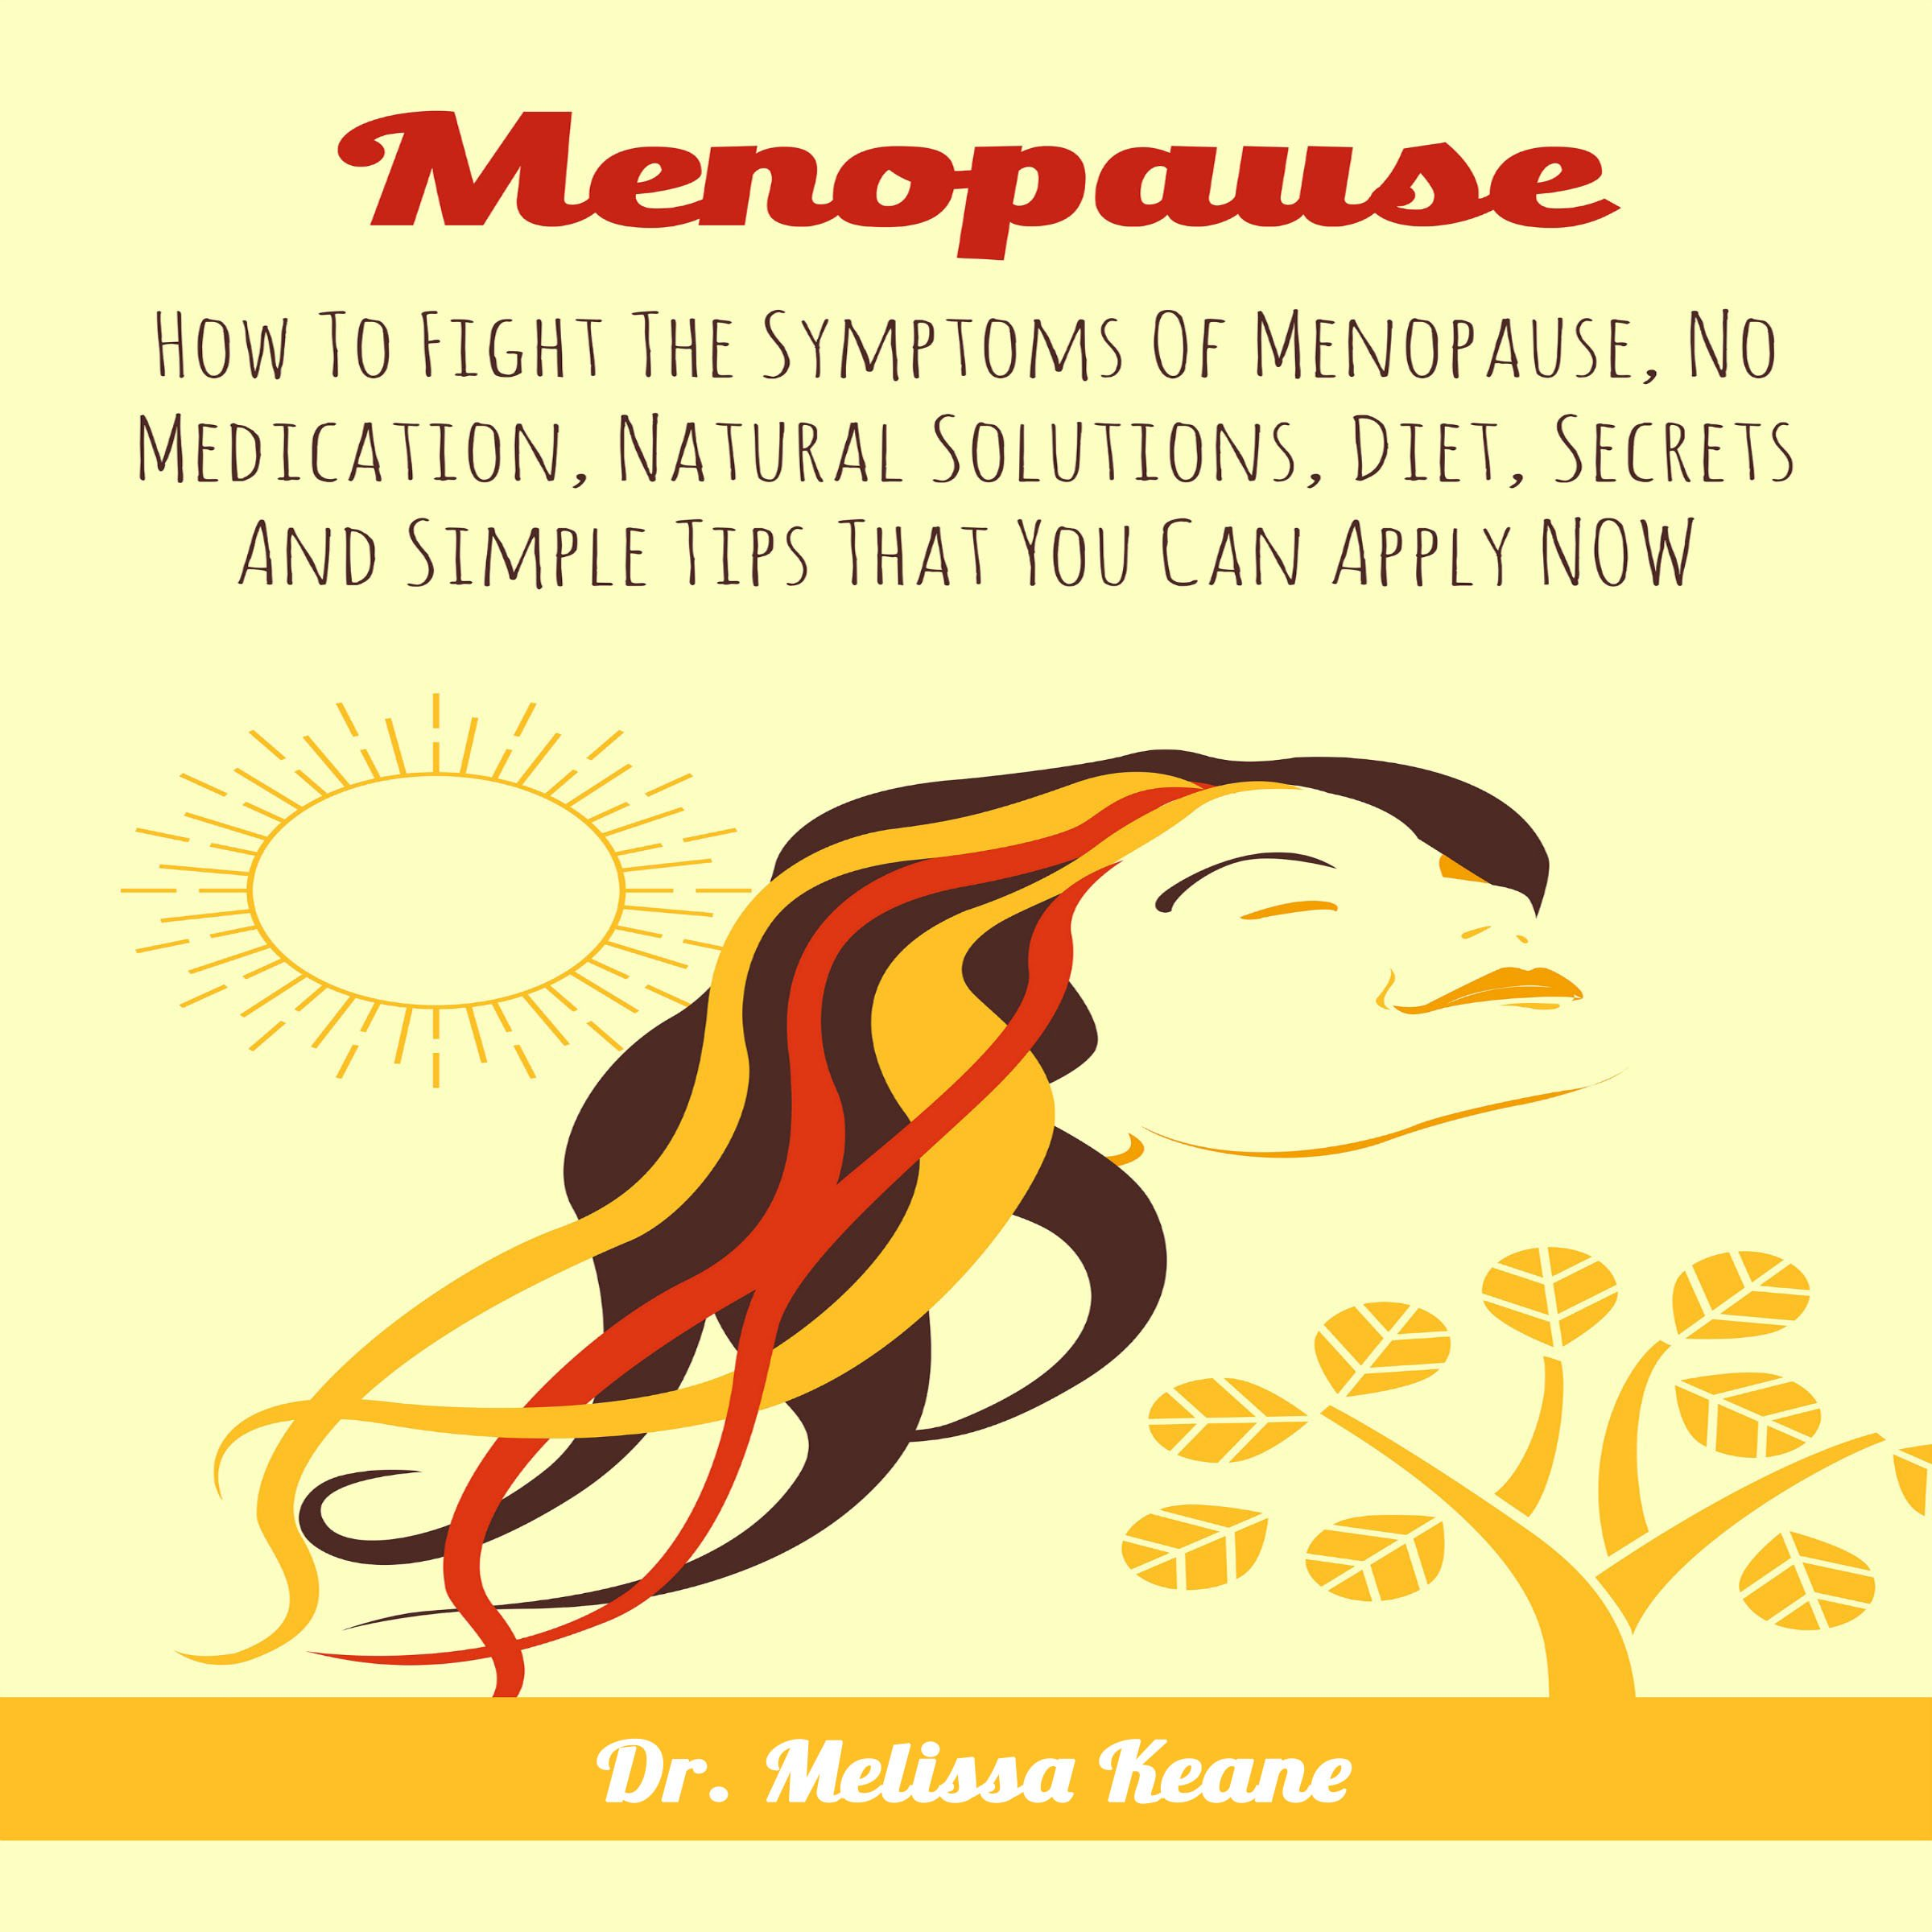 Menopause  How To Fight The Symptoms Of Menopause No Medication Natural Solutions Diet Secrets And Simple Tips That You Can Apply Now